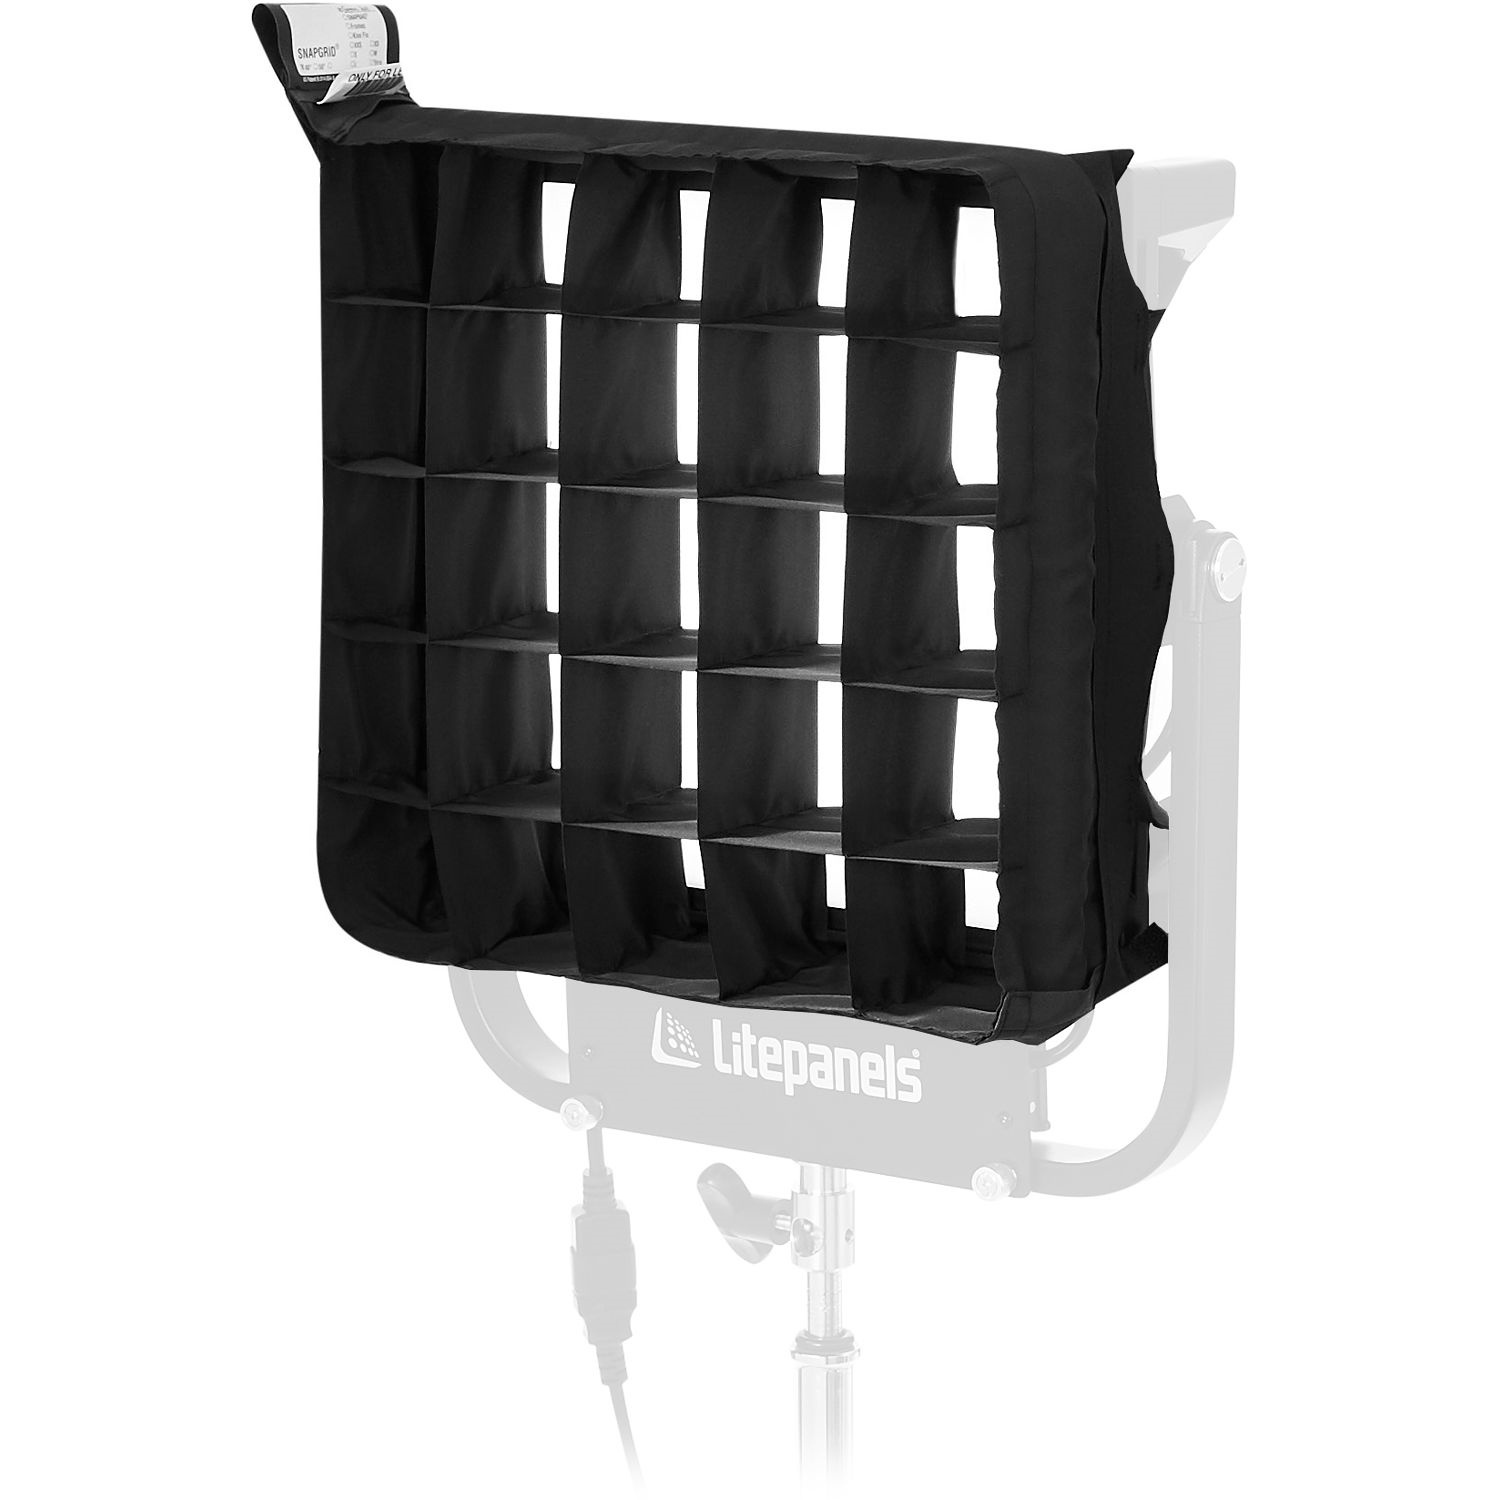 Litepanels Snapgrid Eggcrate for Gemini 1x1 LED Panel (40 deg)